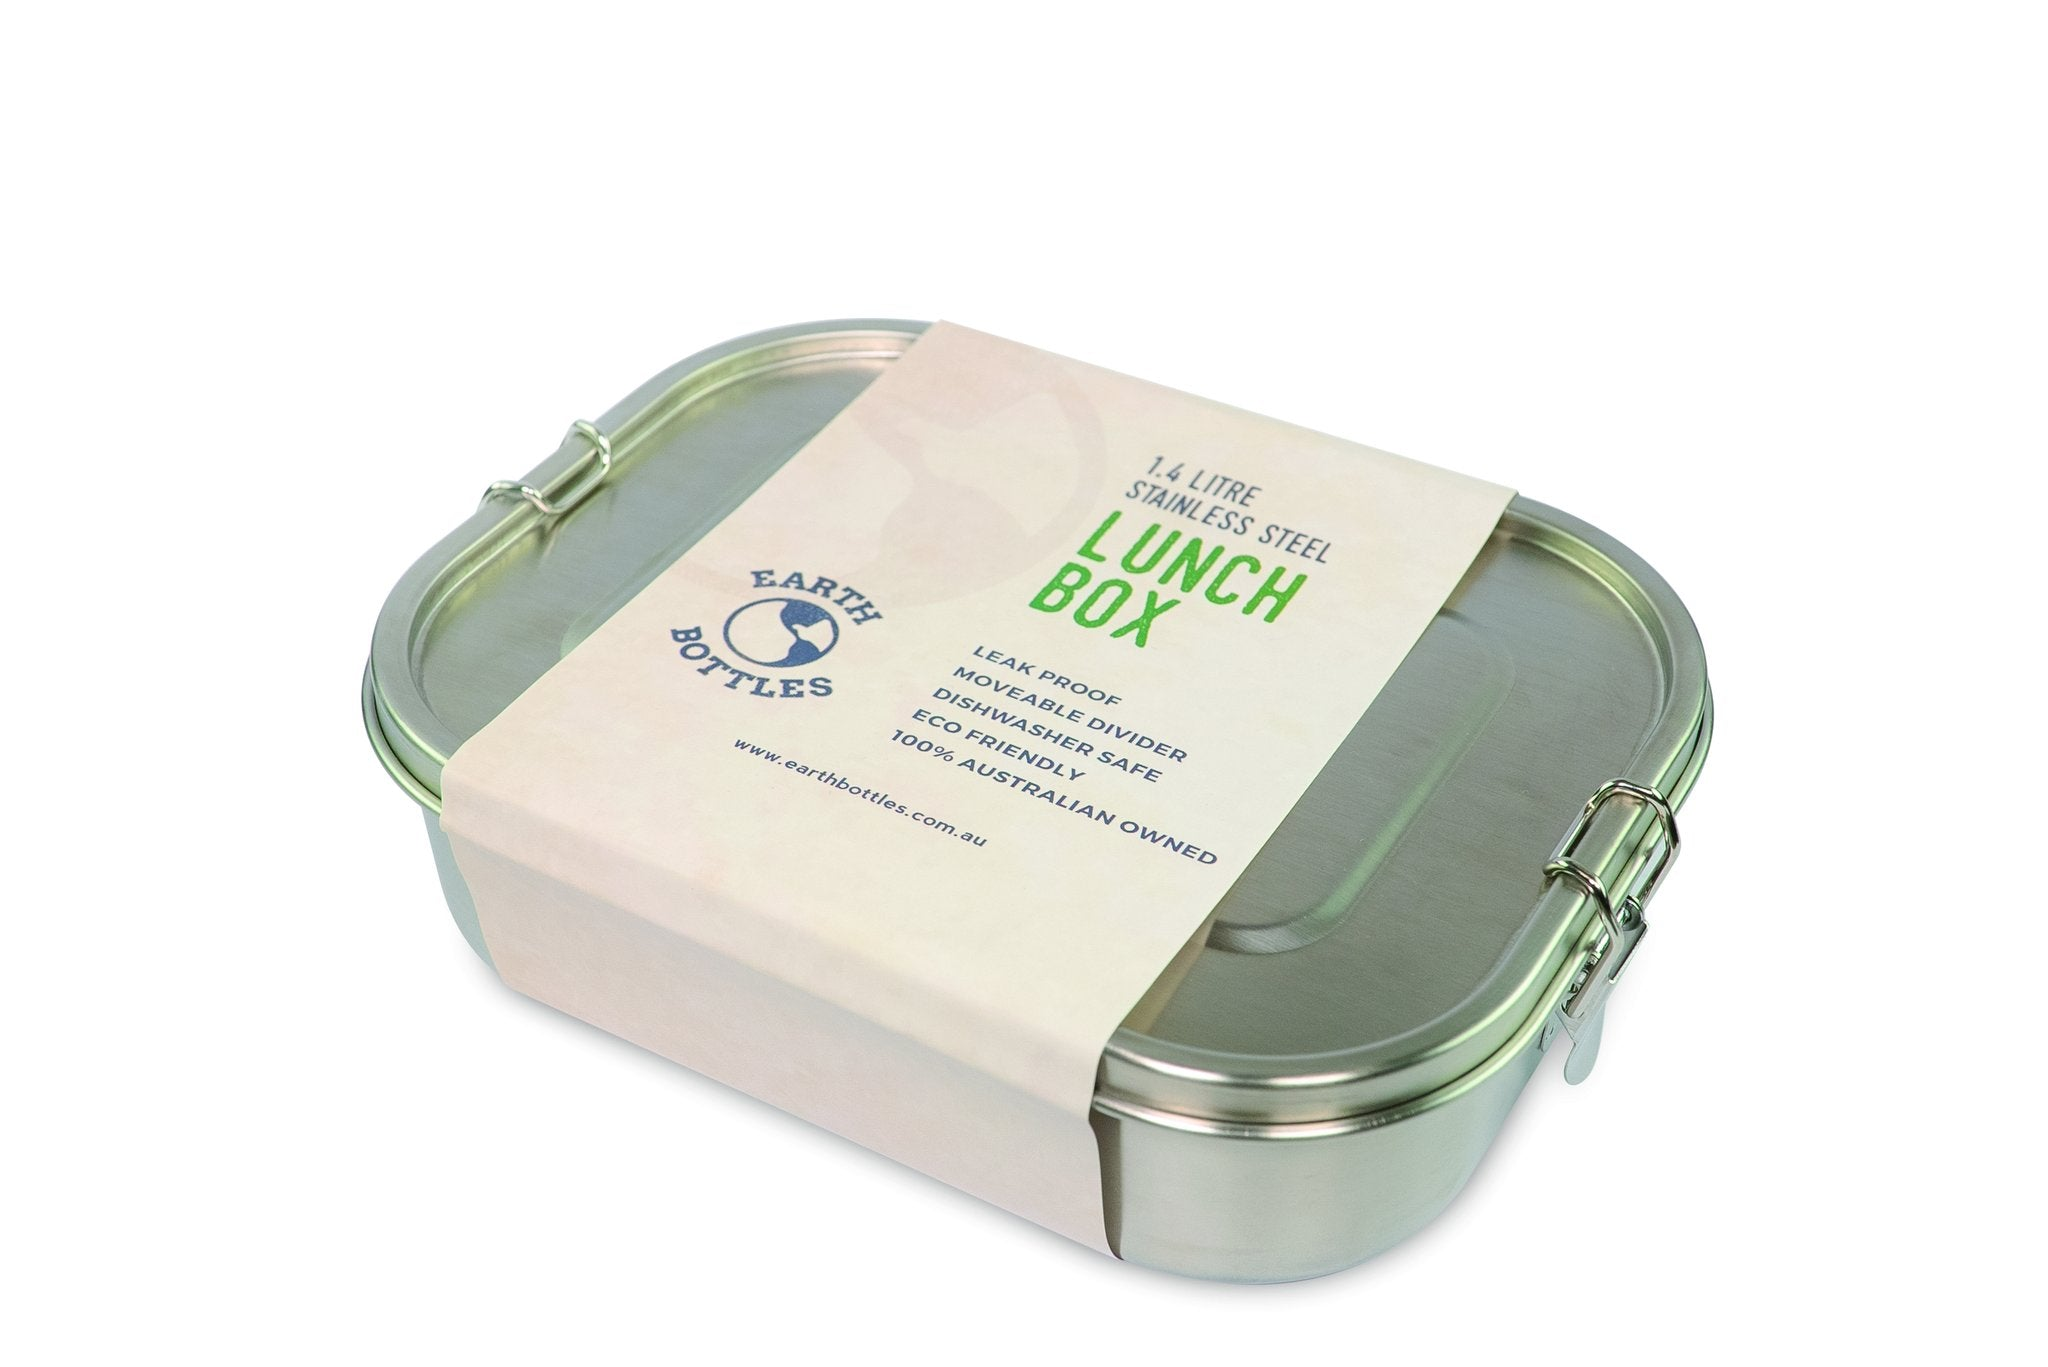 Earth Bottle 1.4 Litre Stainless Steel Lunch Box with removable divider -Lunch box